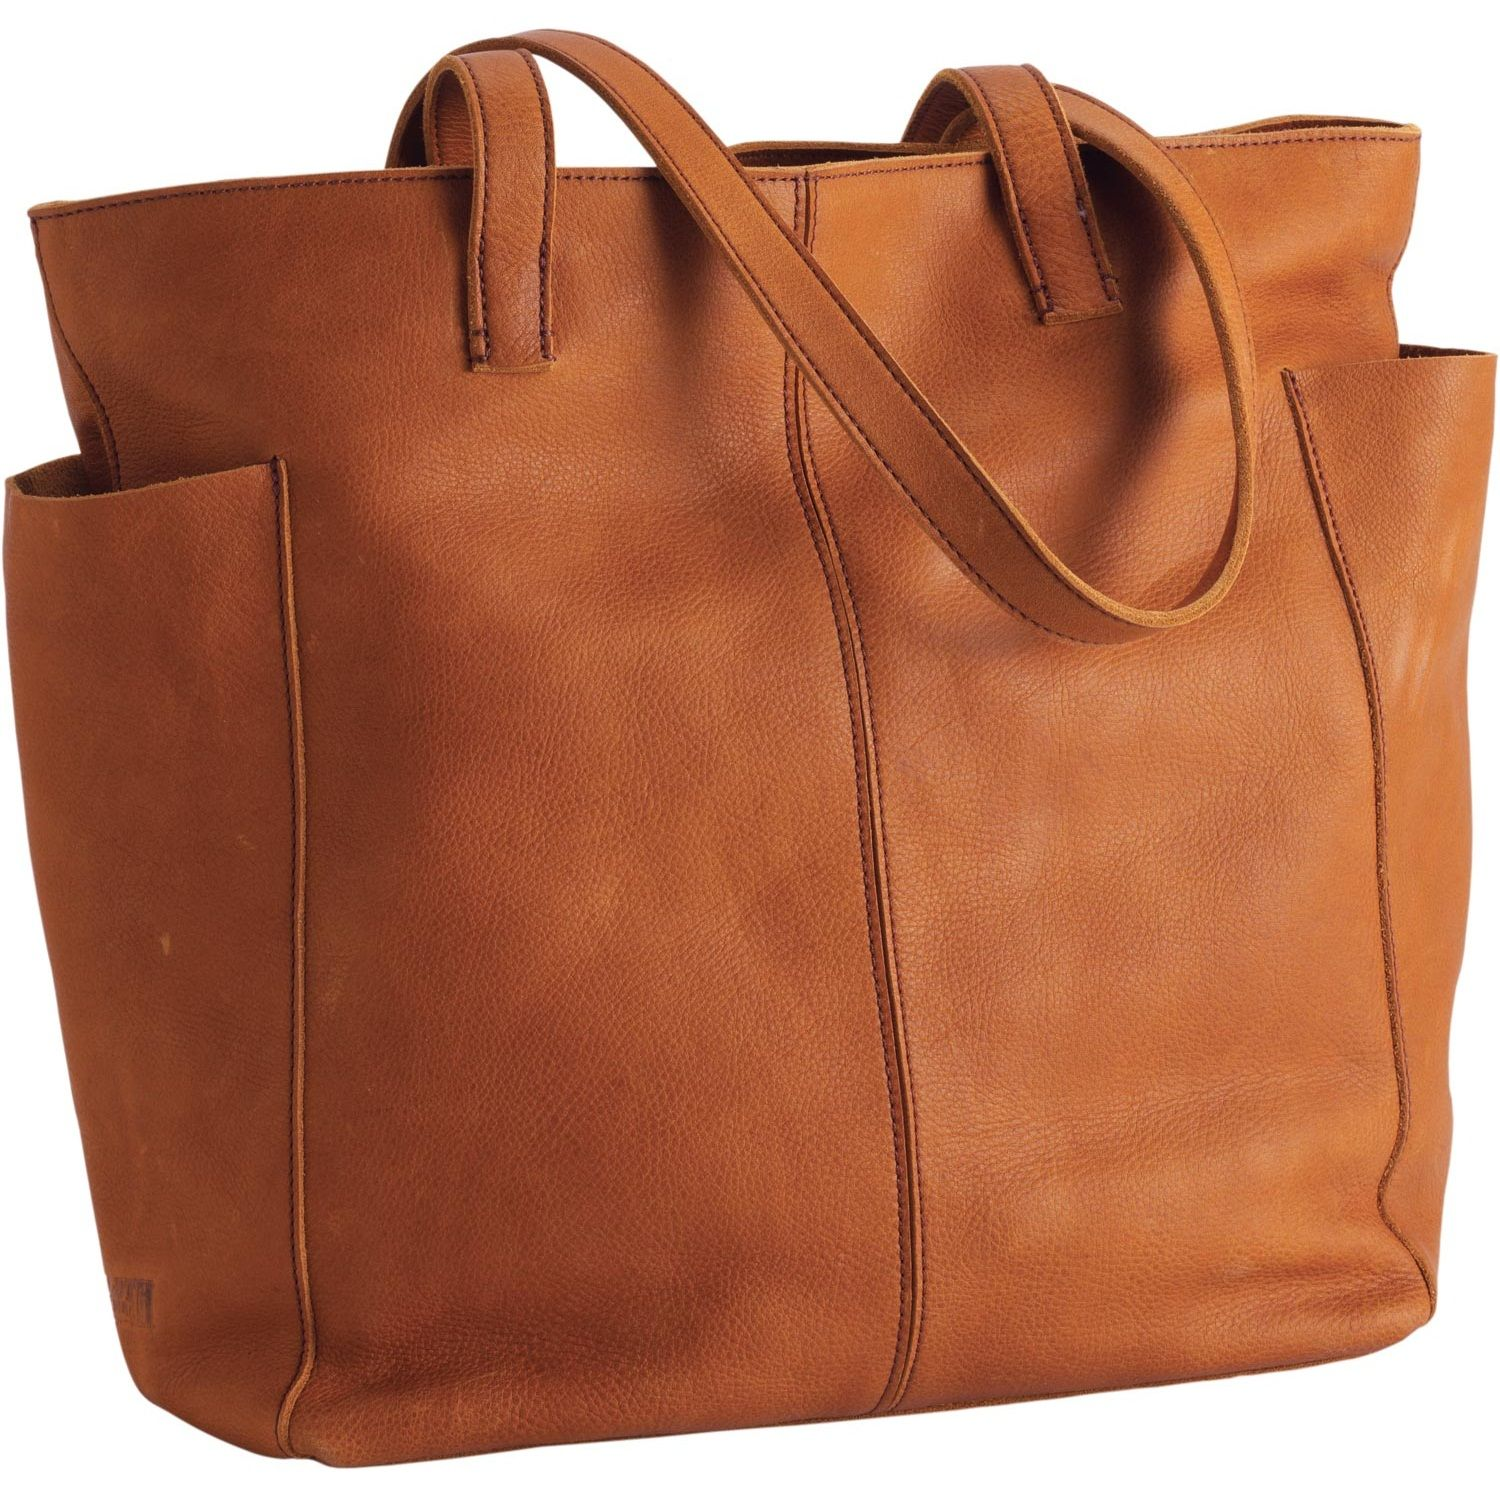 Women's Lifetime Leather Travel Tote Bag - Duluth Trading ~ I want ...